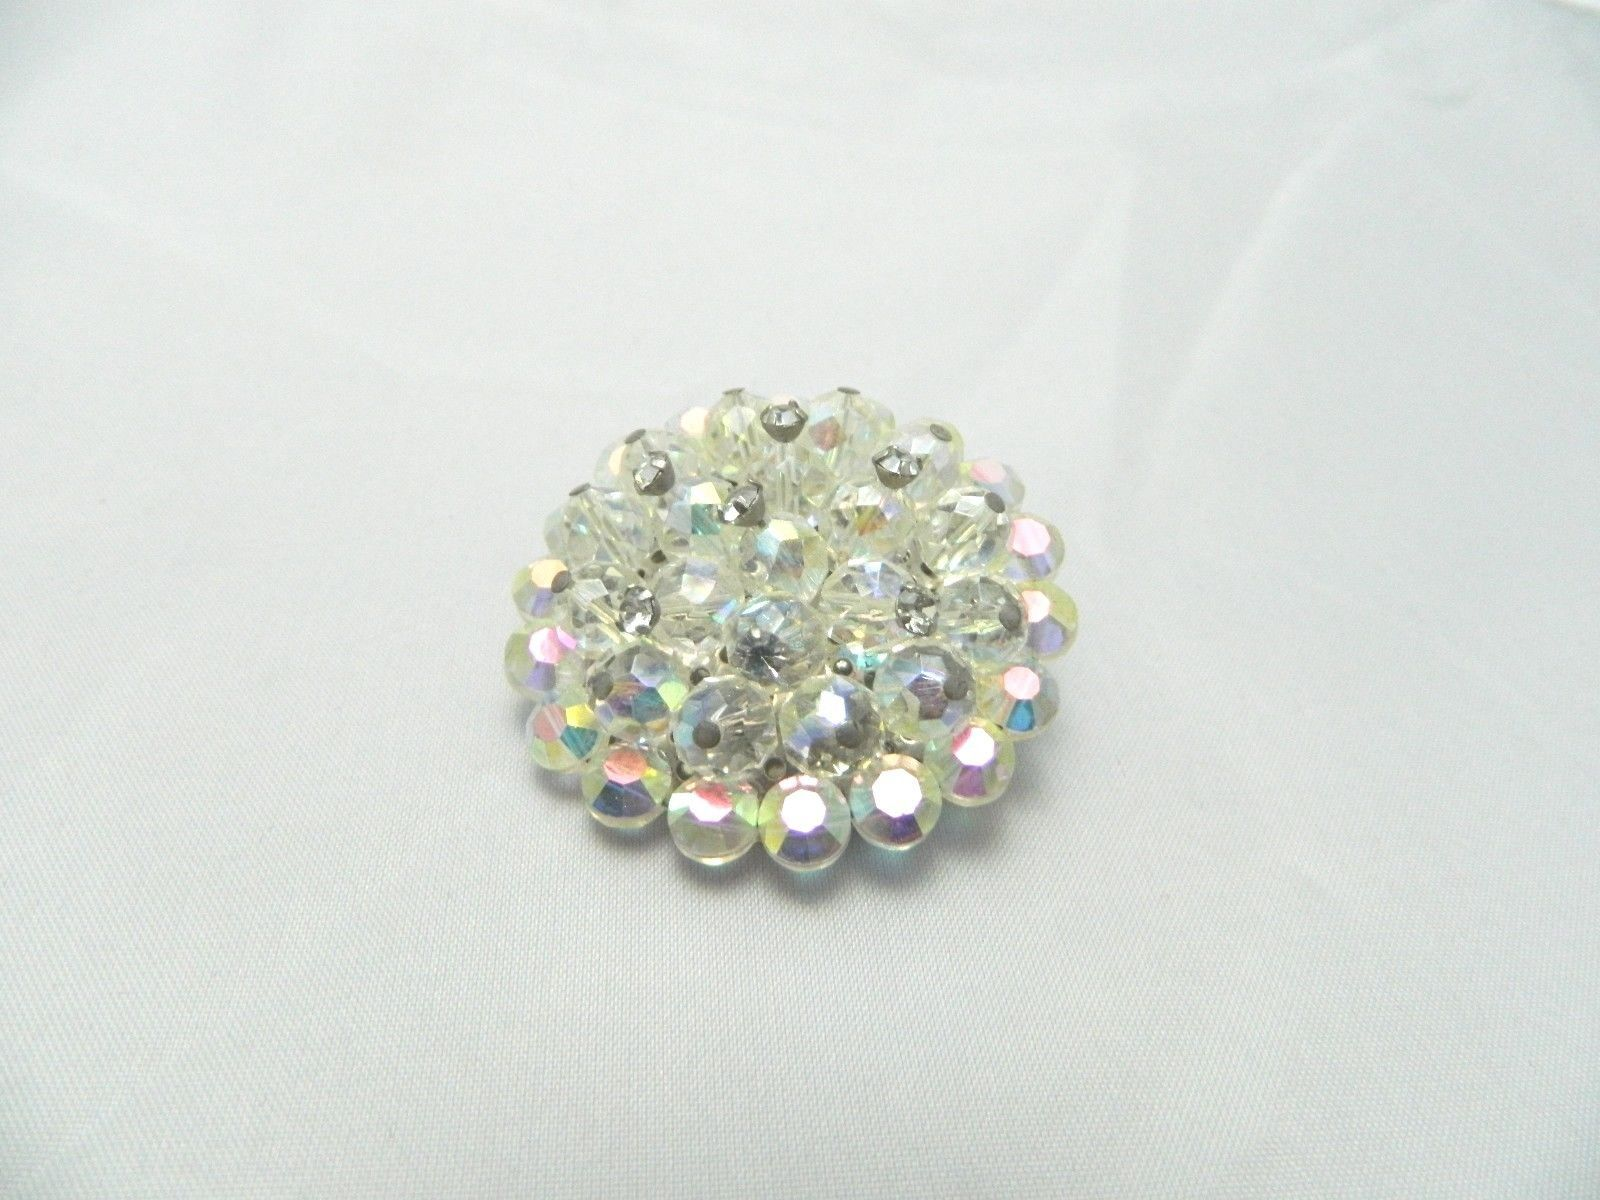 VTG RARE Clear AB Demi Parure Crystal Rhinestone Accented Glass Pin Brooch  image 5